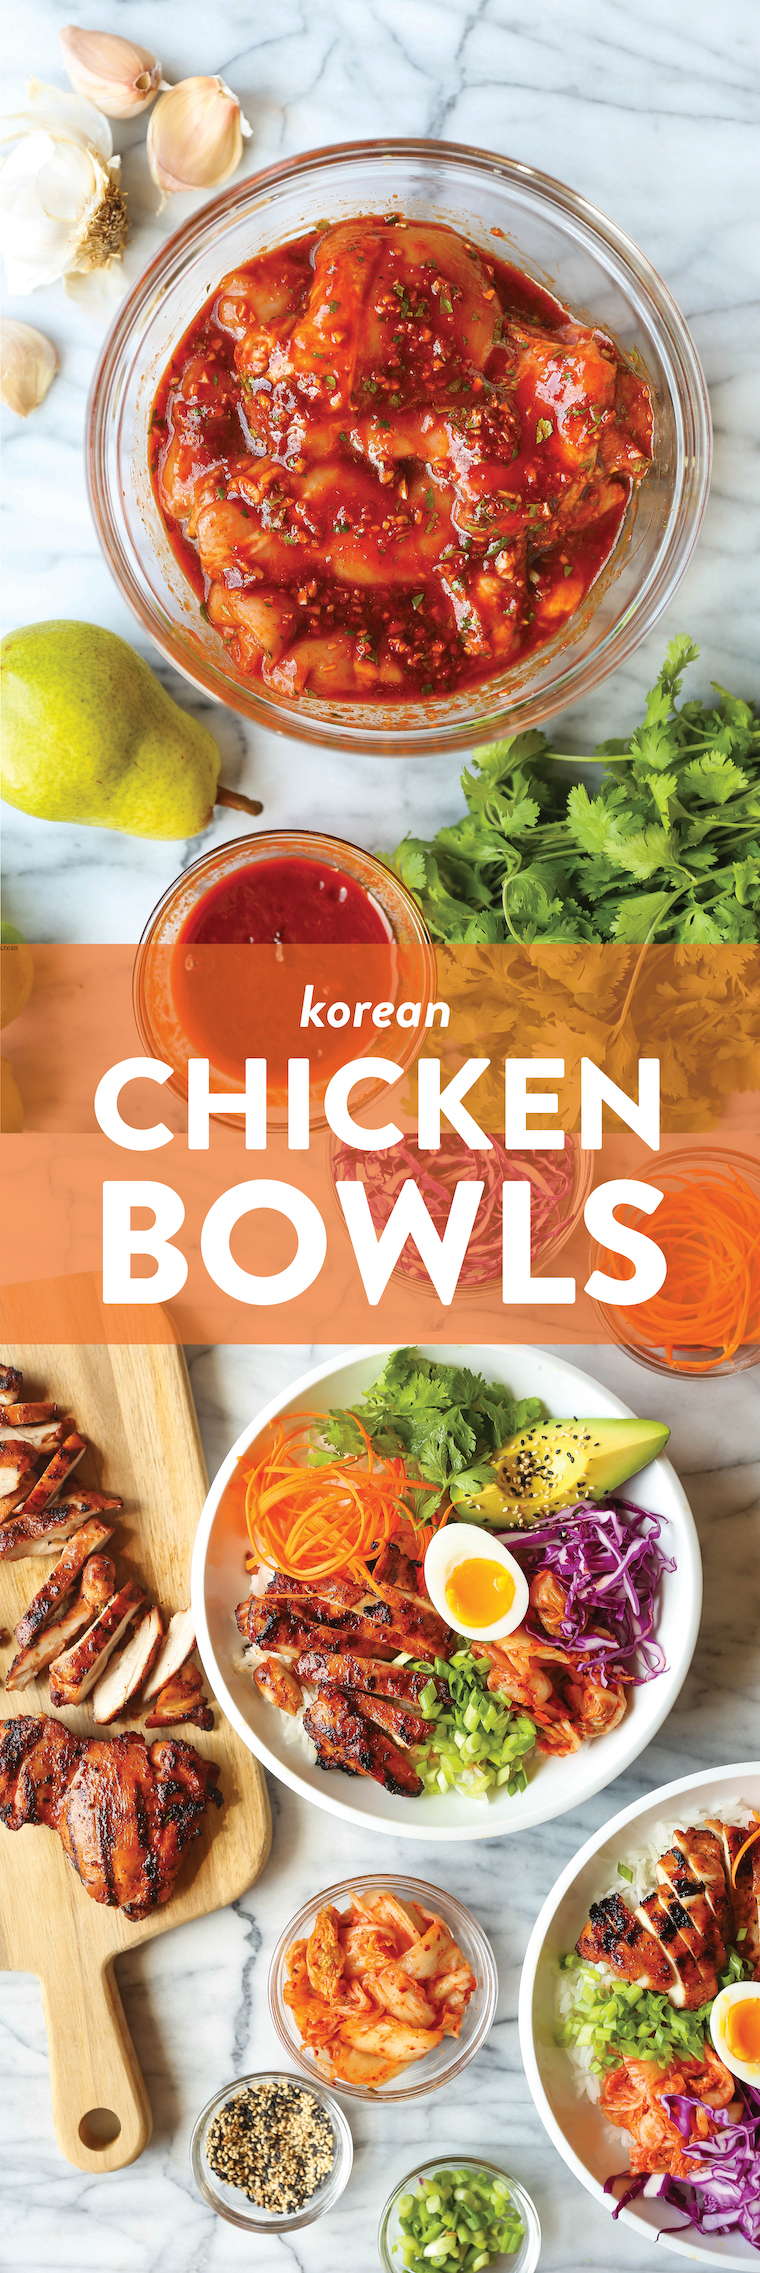 Korean Chicken Bowls - Juicy, flavorful Korean chicken bowls made with the easiest marinade ever! Serve with your choice of grain/rice and desired toppings!